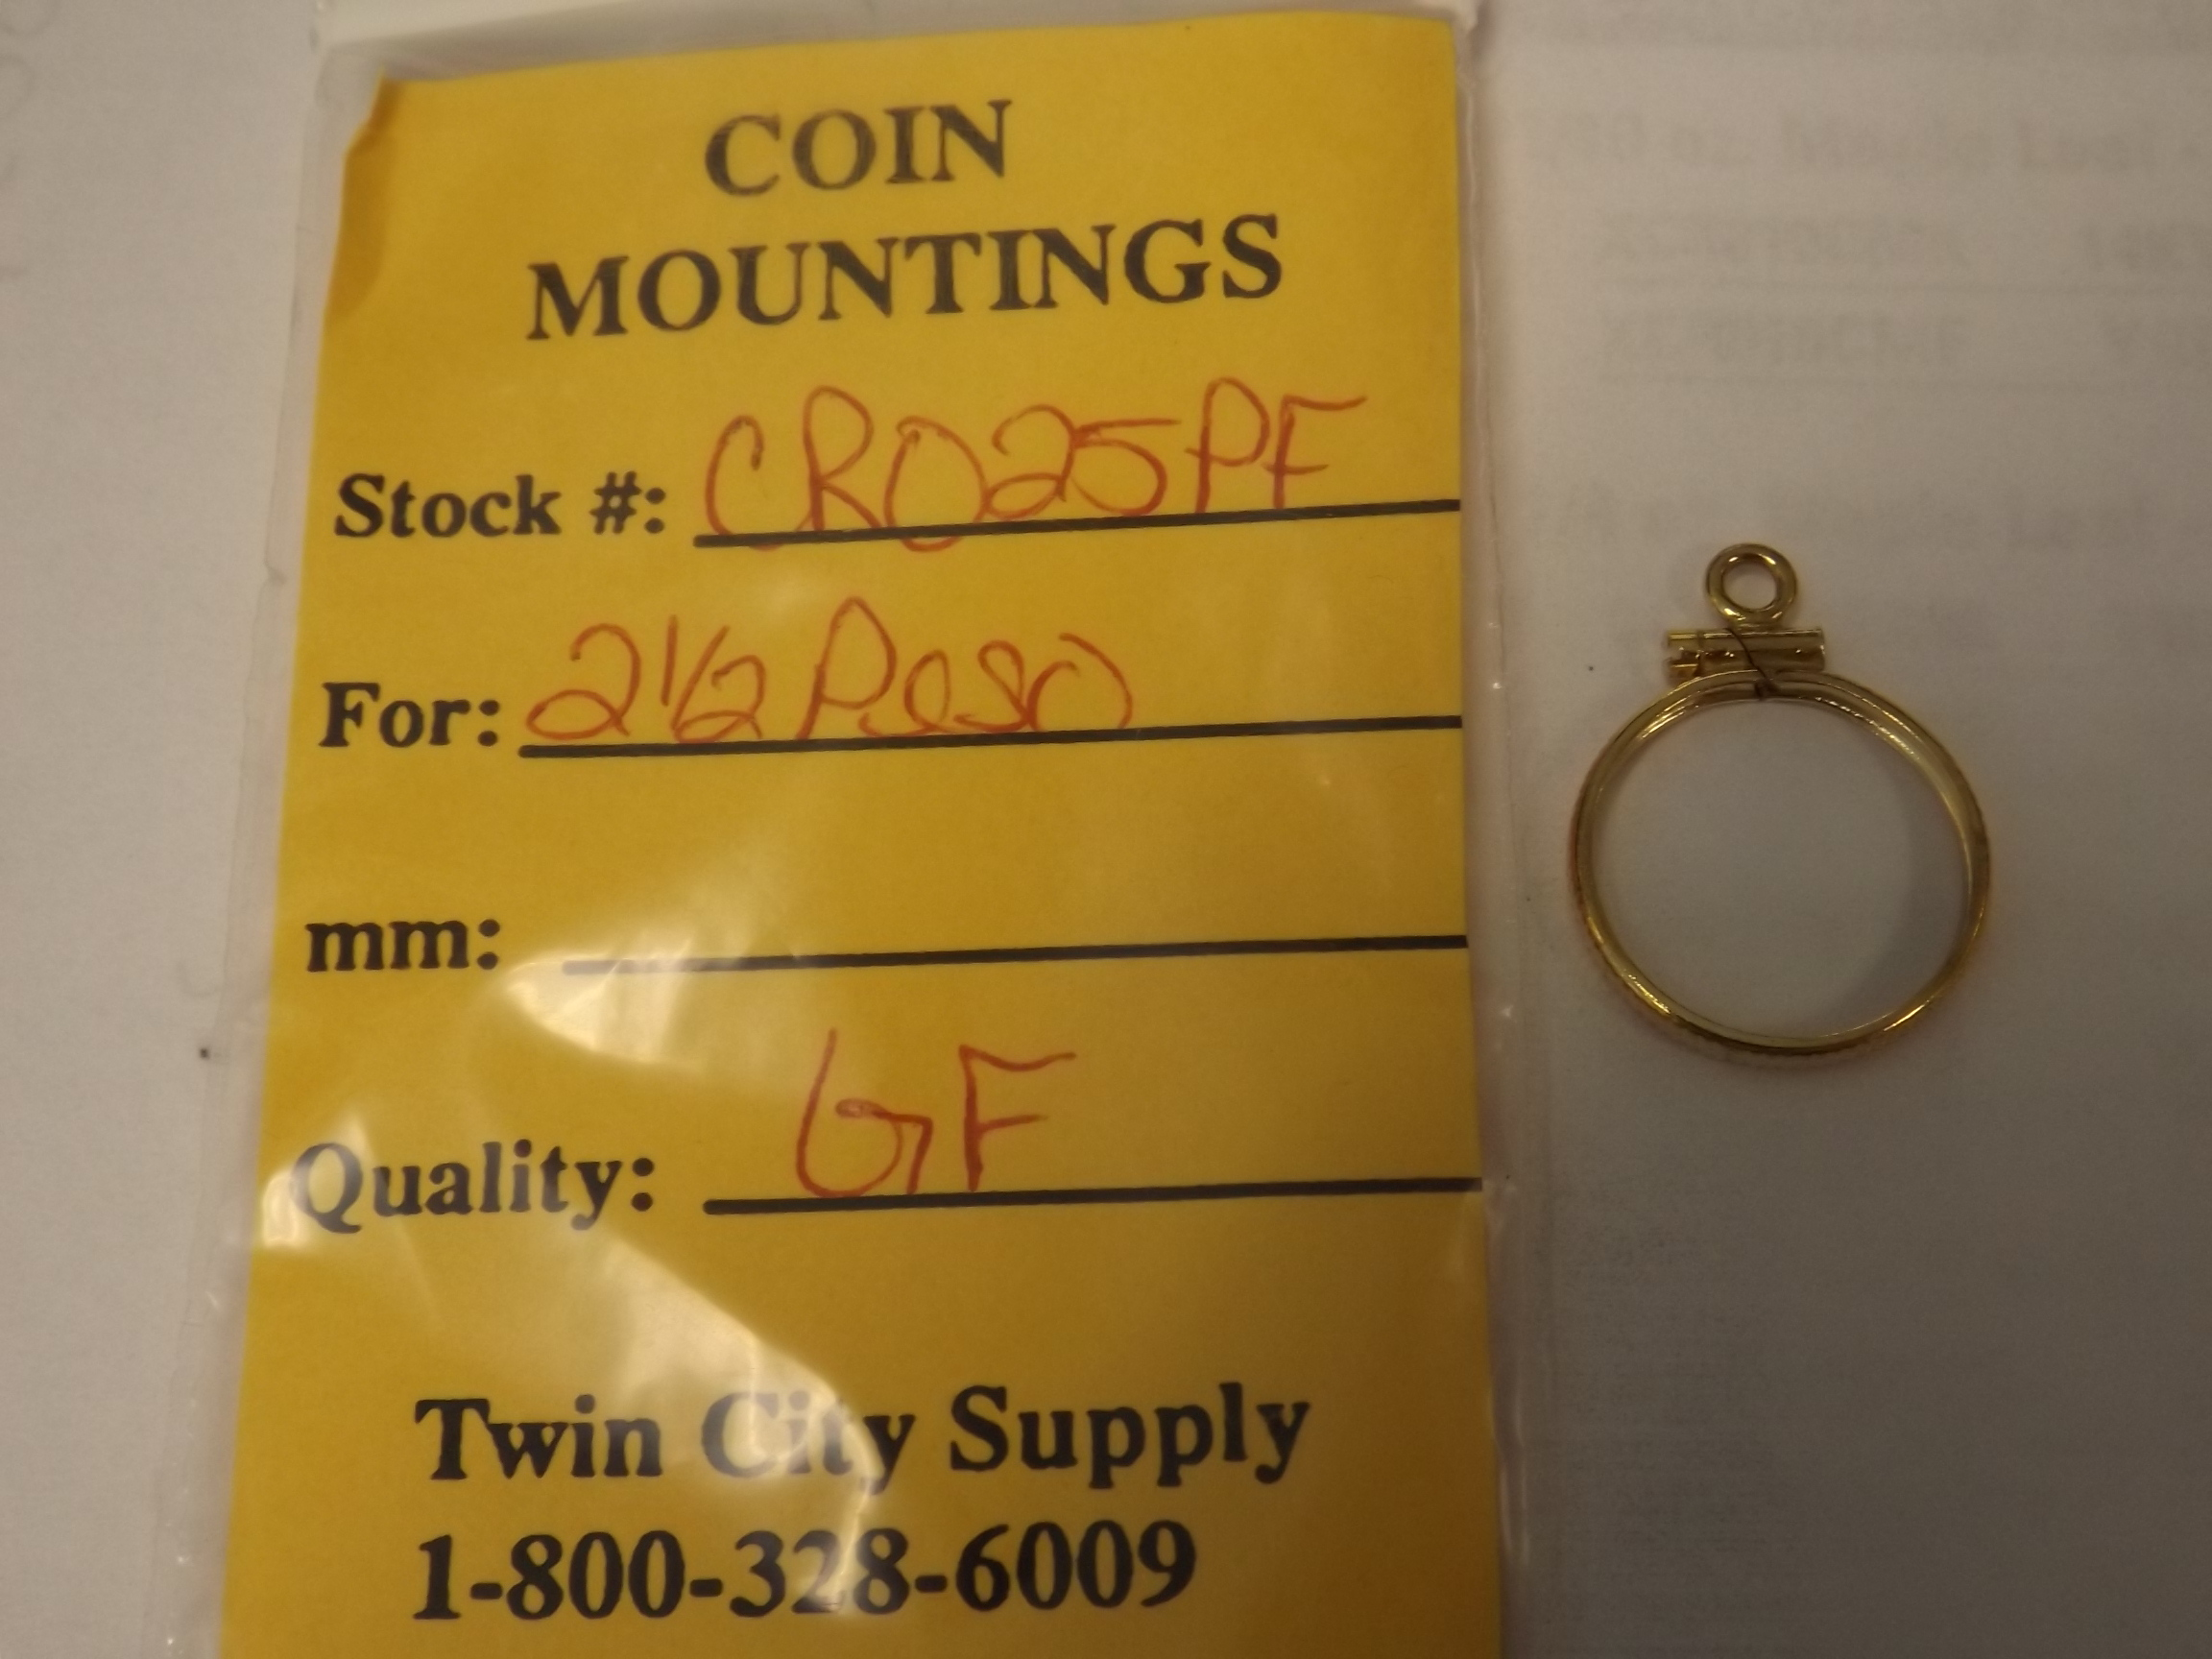 CR025PF Mexican Coin Mounting--2 1/2 Pesos-Yellow Gold Filled Closeout!